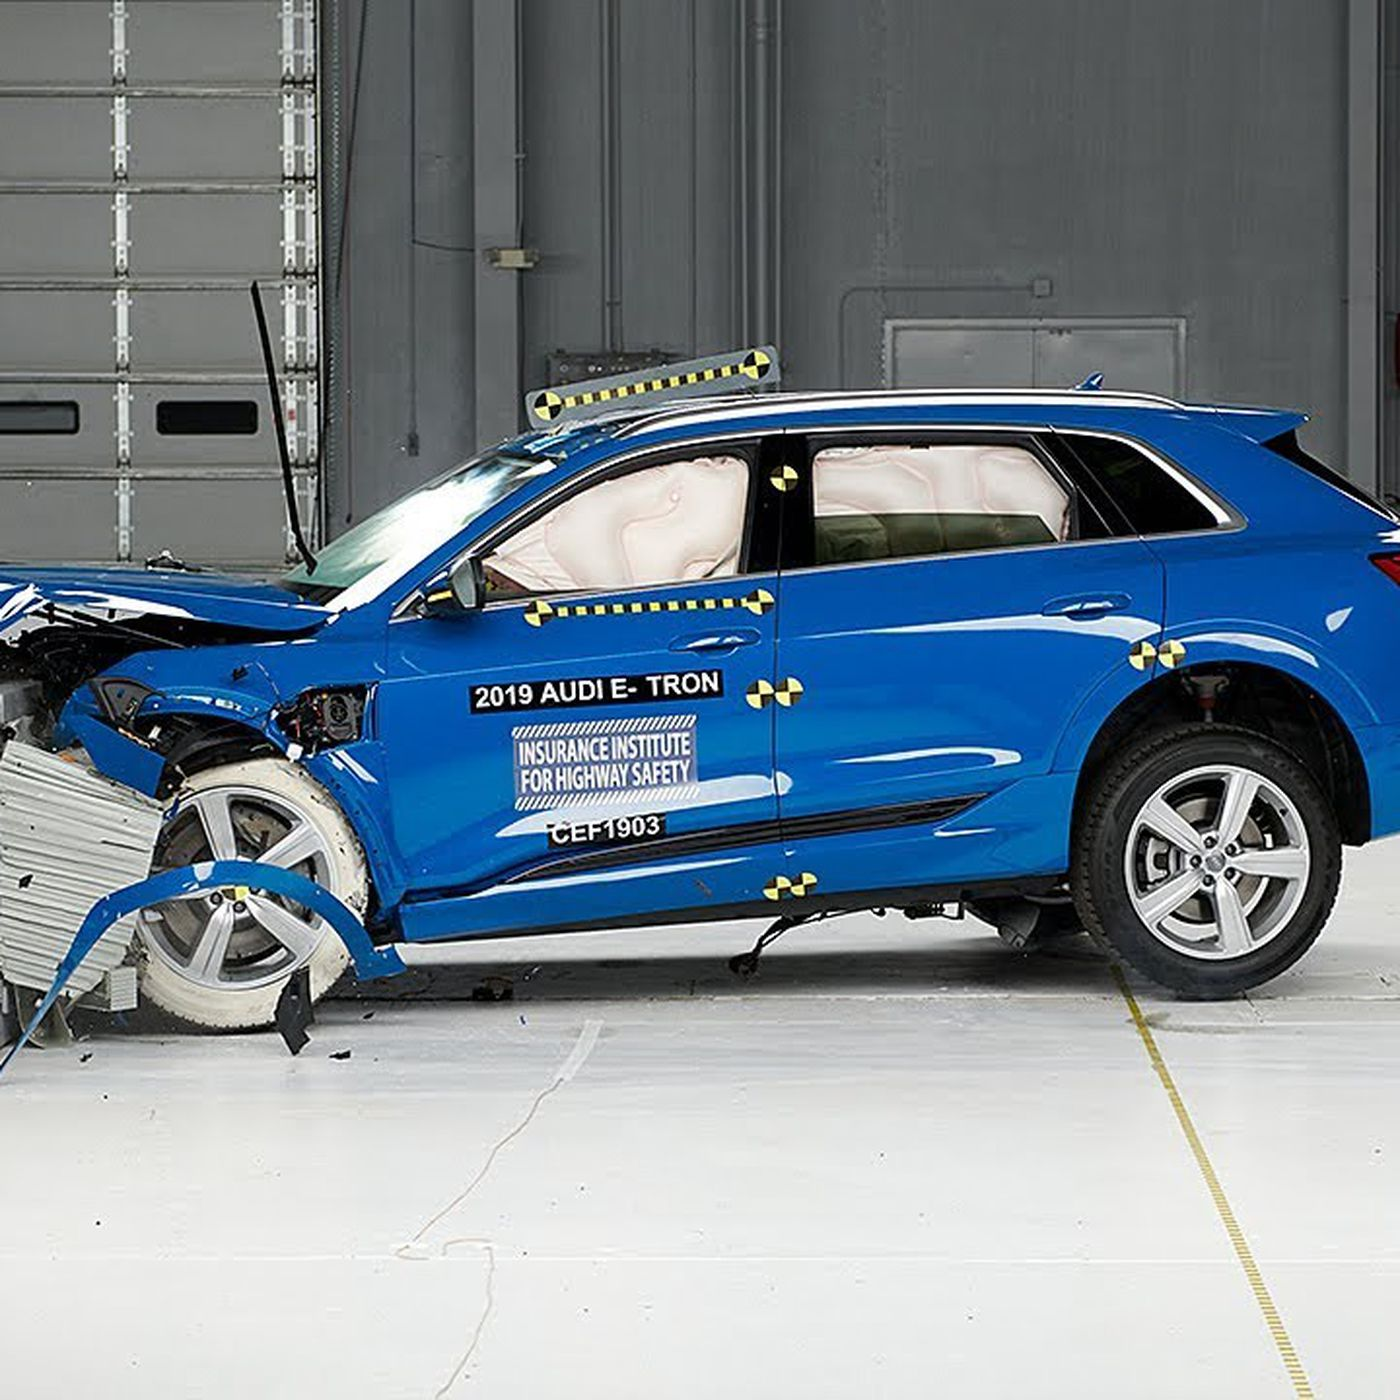 Audi's E-Tron becomes first electric car to win top safety